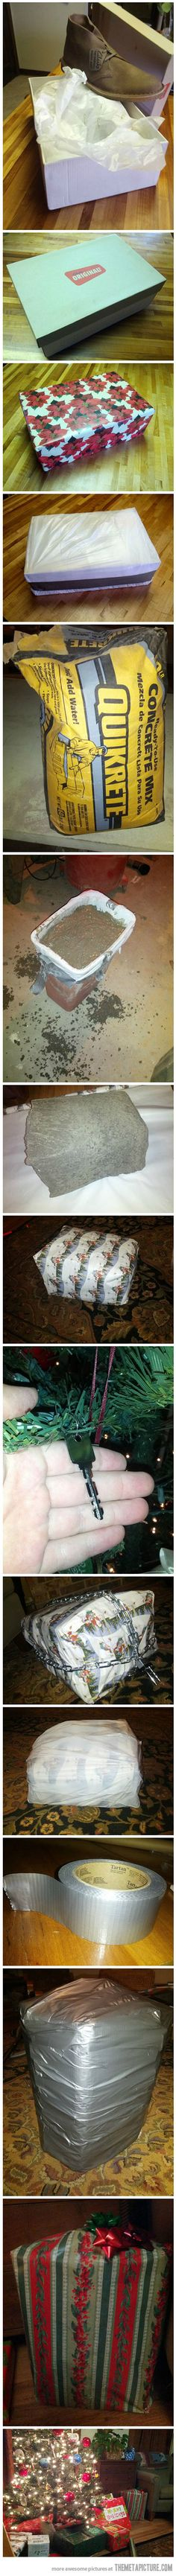 How to Properly Wrap a Present…